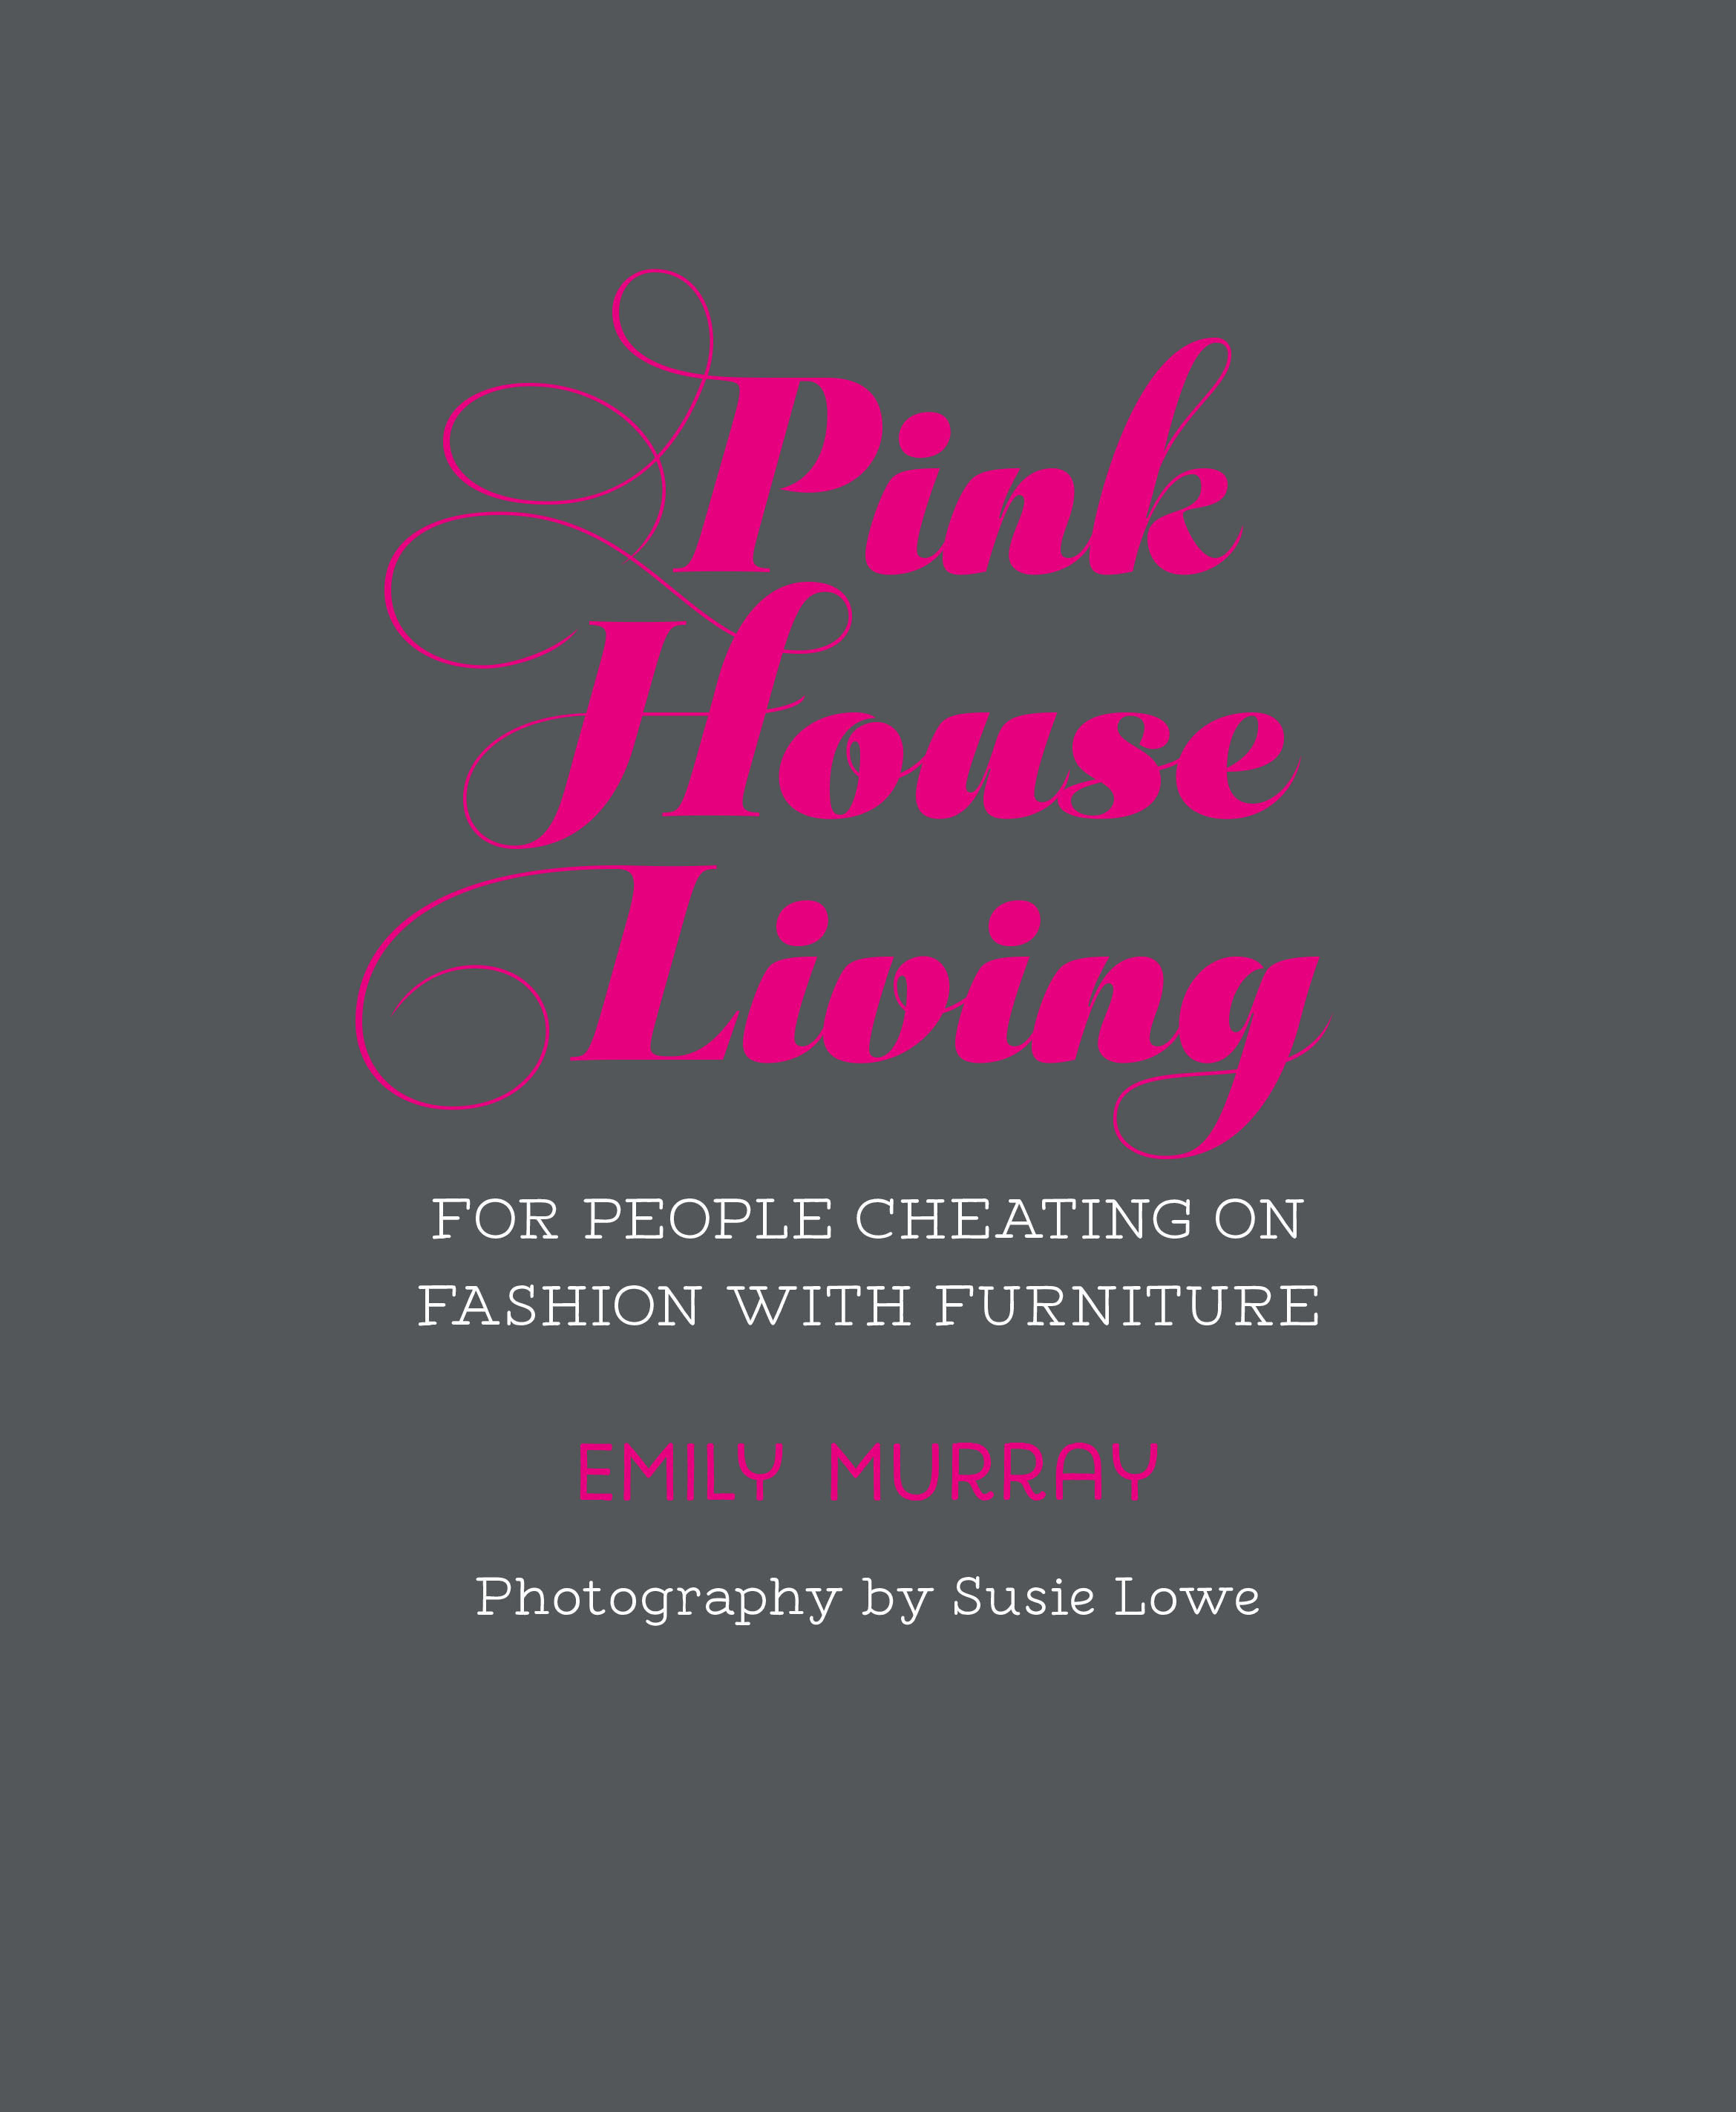 Pink House Living: For People Cheating On Fashion With Furniture  by Emily Murray, photography by Susie Lowe is available now